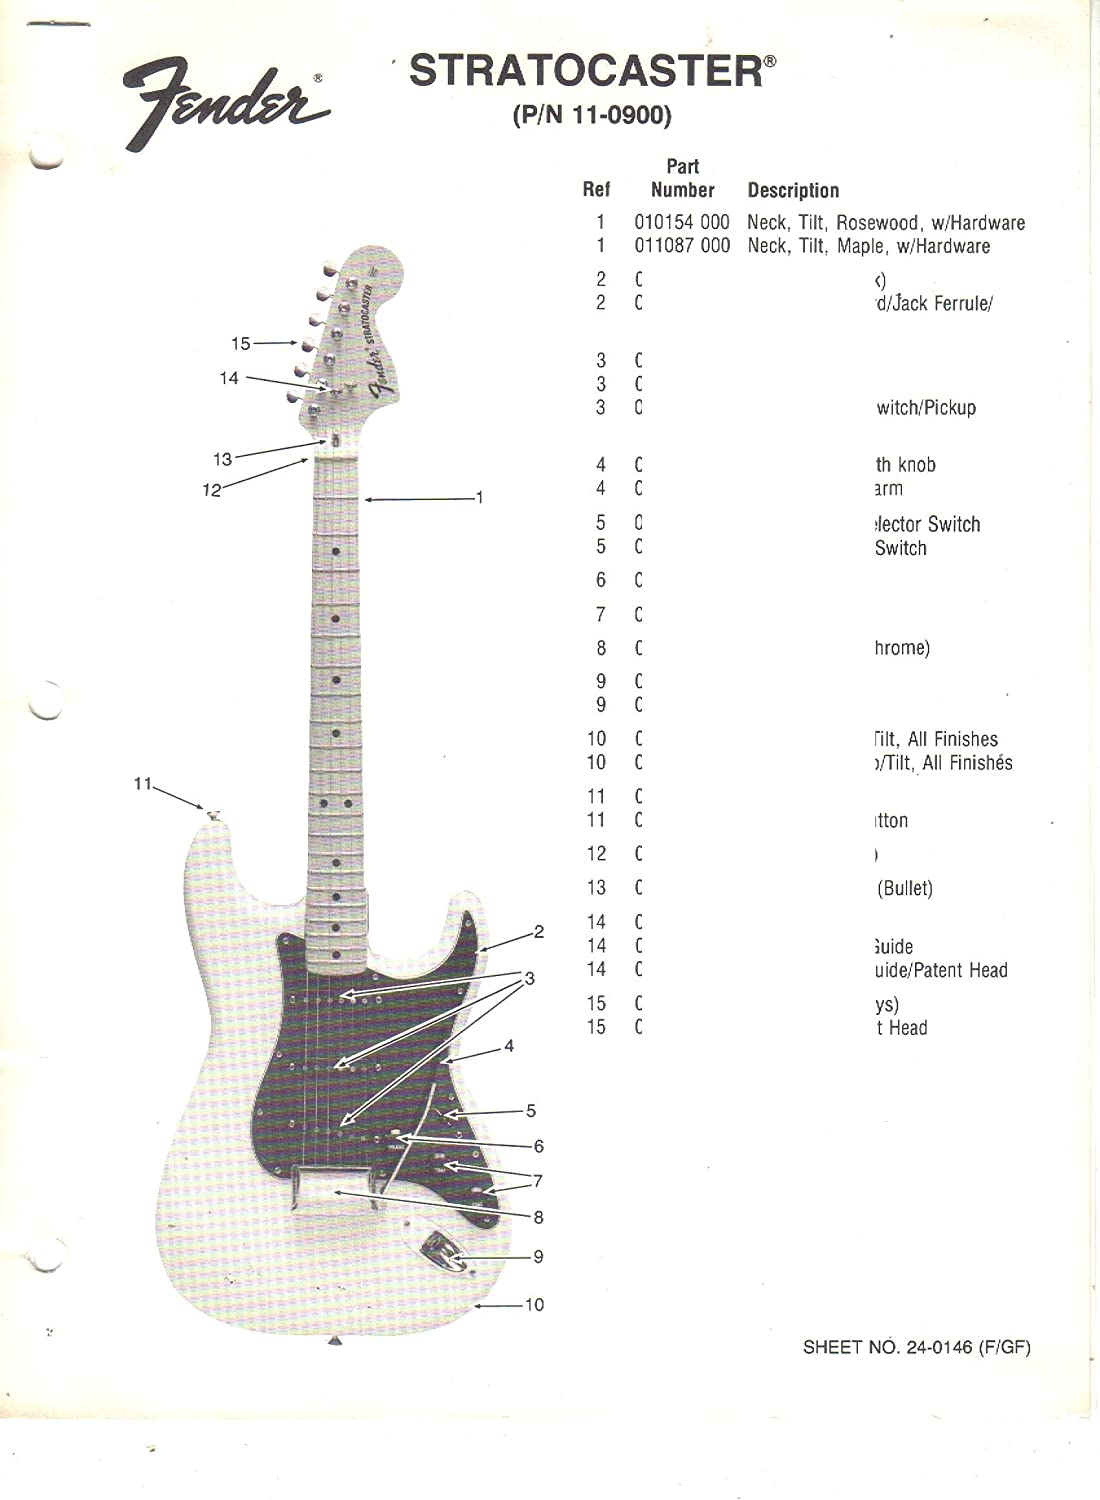 Amazon.com: FENDER Jazz B Plus V, Electric B Guitar ... on strat switch, brian diagram, strat guitar, guitar diagram, alpine wire harness diagram, strat colors, strat trem block, strat dimensions, electric starter diagram, gas pump diagram, strat parts, strat harness diagram, strat bridge tone mod, stratocaster diagram, strat gold pickguard, fender diagram, strat schematic, strat headstock, strat tone controls,